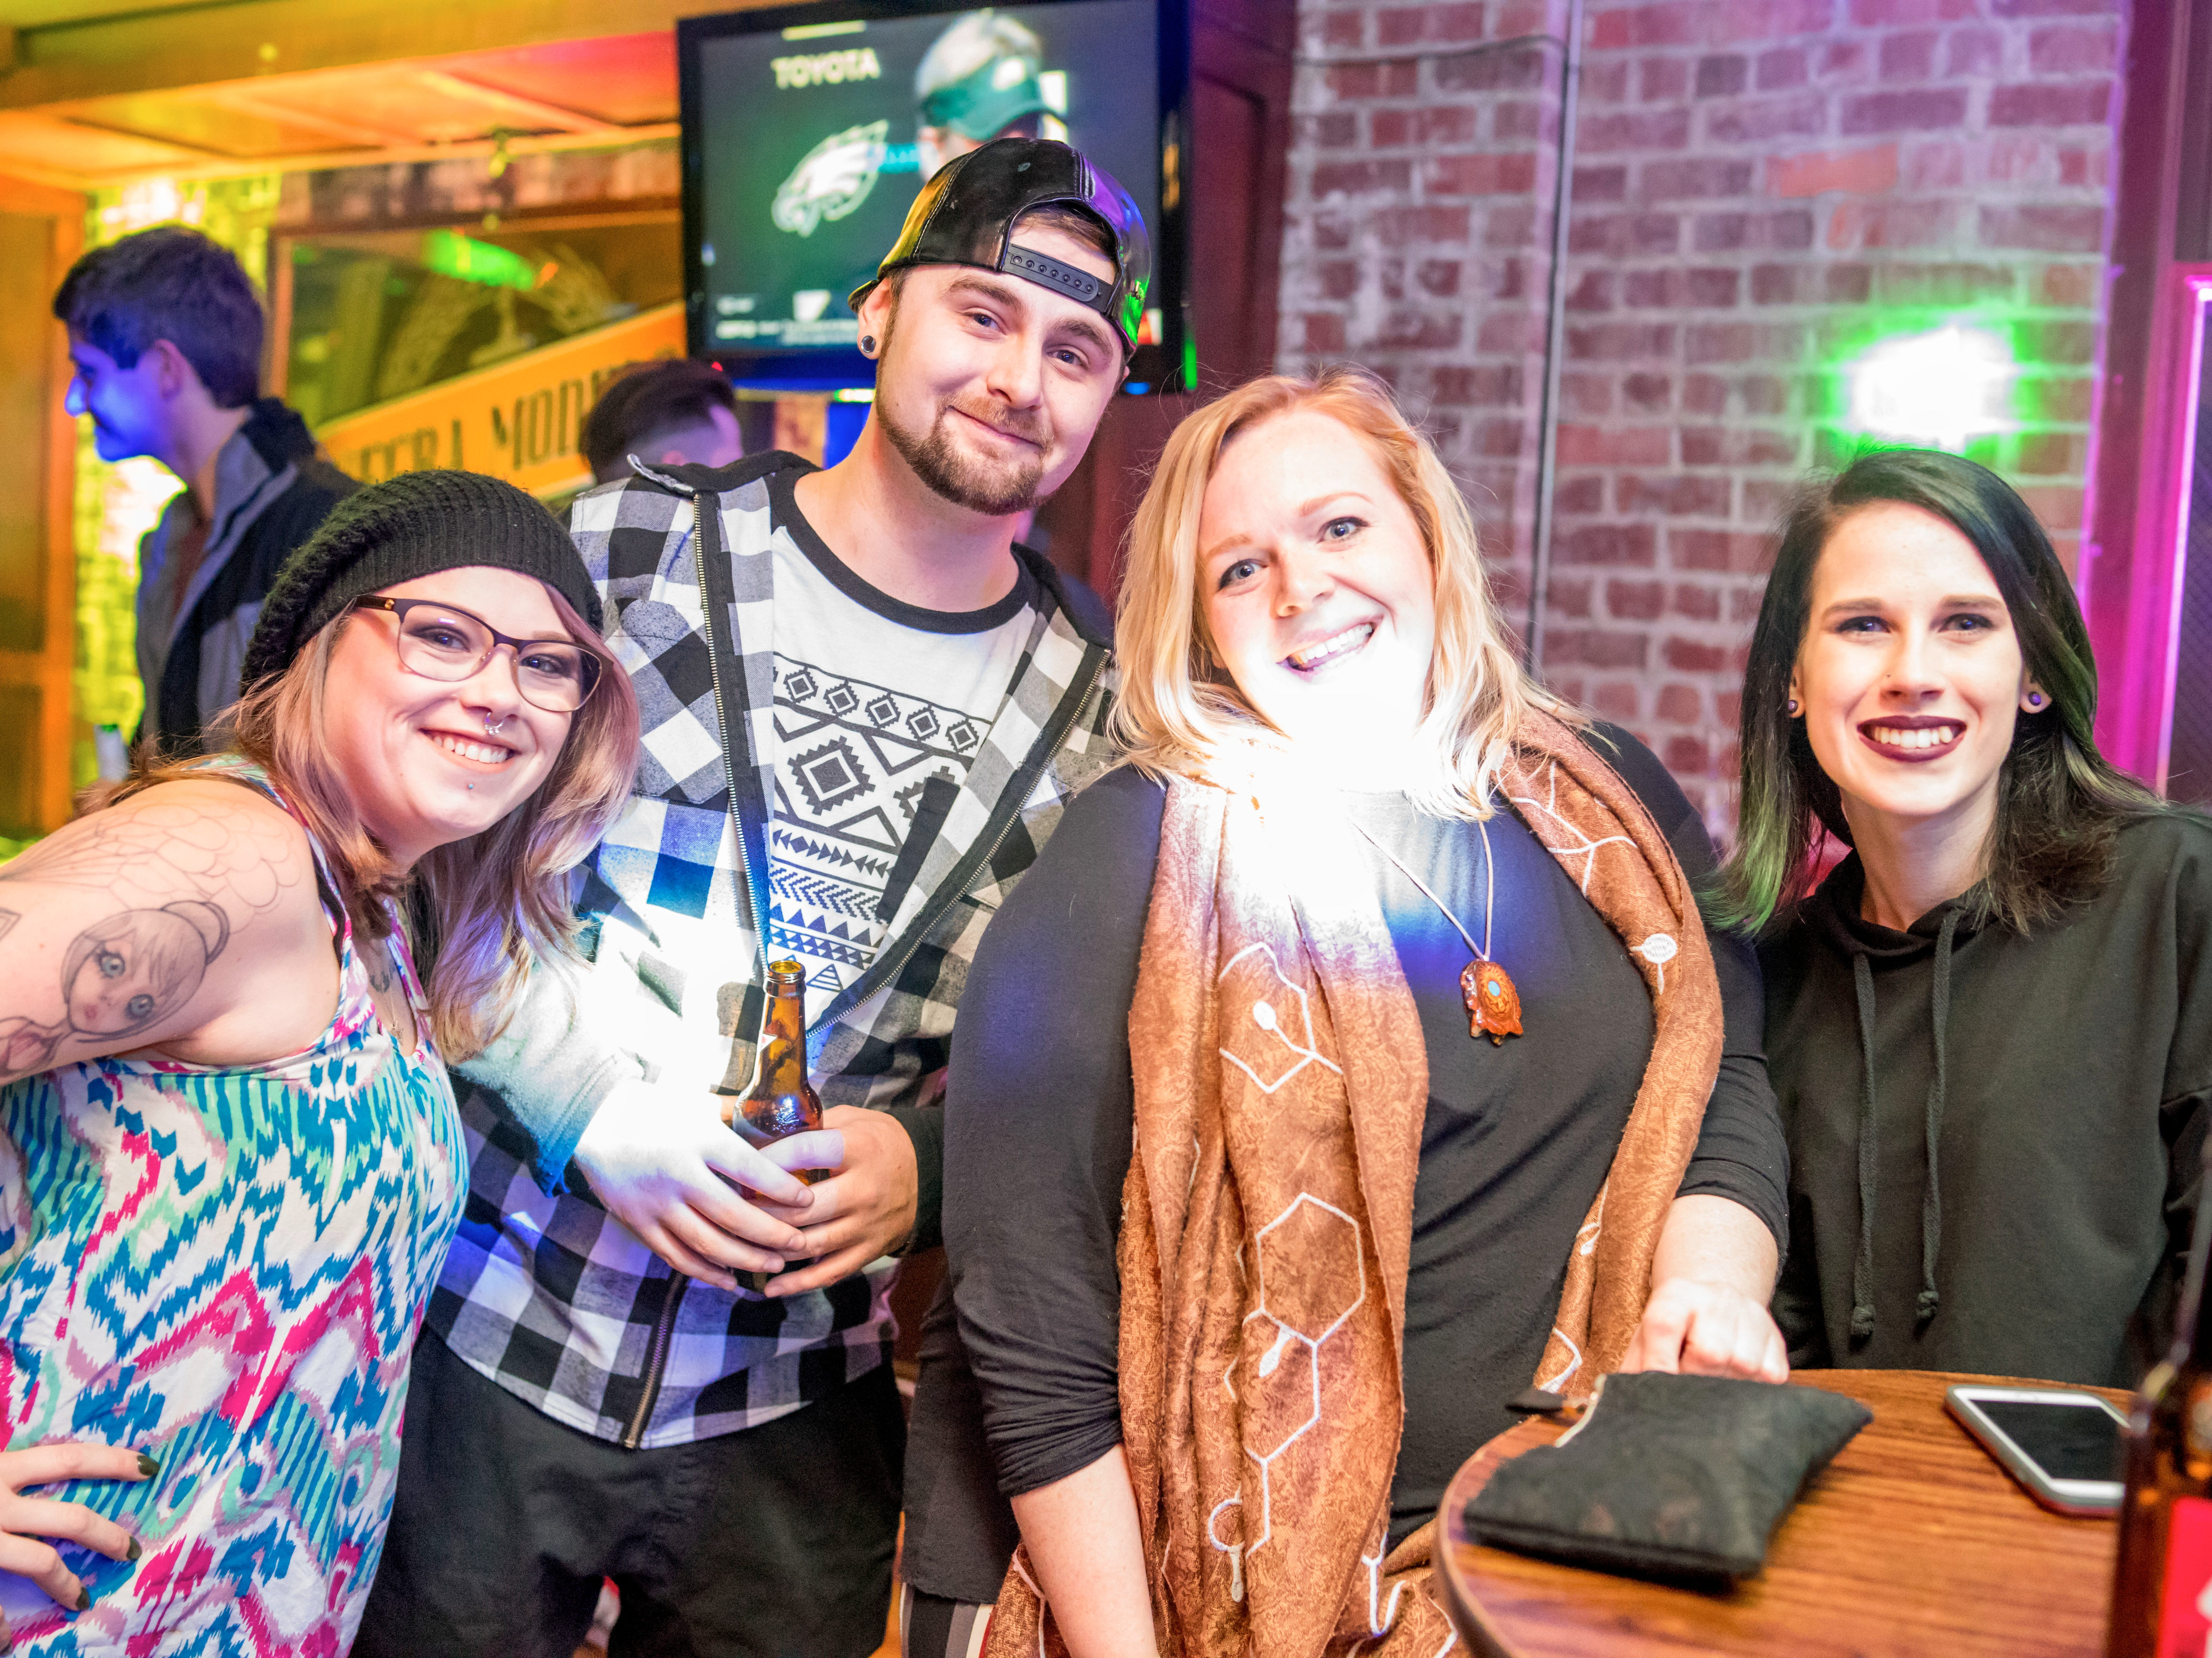 Jessica Nelson, 26, Nick Leoneti, 26, Maddie Noel, 27, and Madison Dorah, 22, all of Des Moines, having a fun time, Friday, Dec. 14 at Heroes.